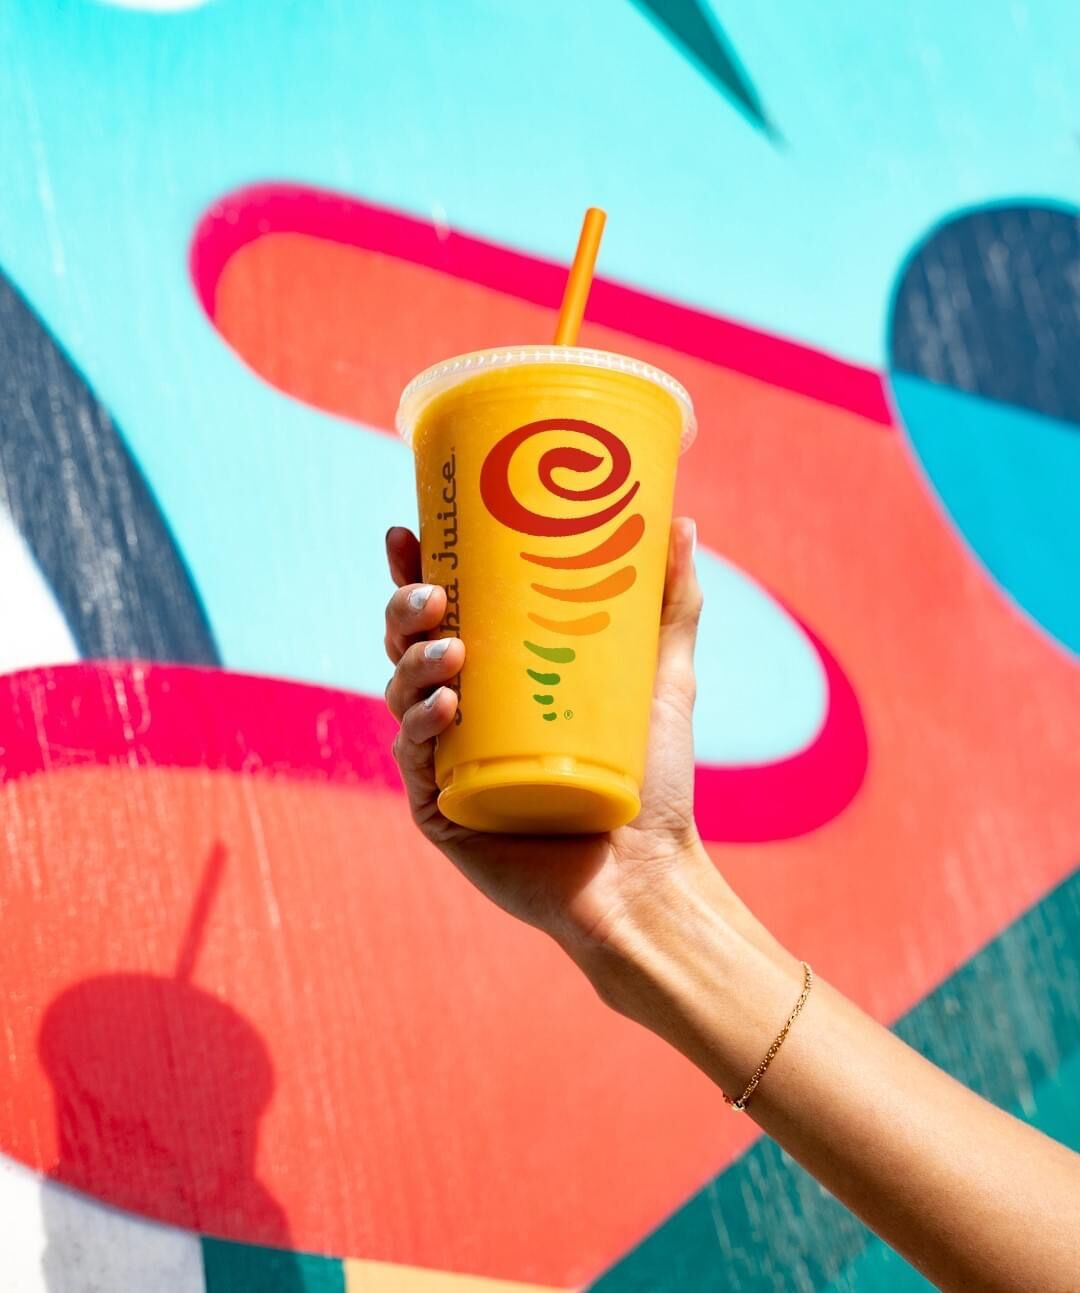 Jamba Juice is known for their variety of signature drinks that are made from wholesome ingredients.